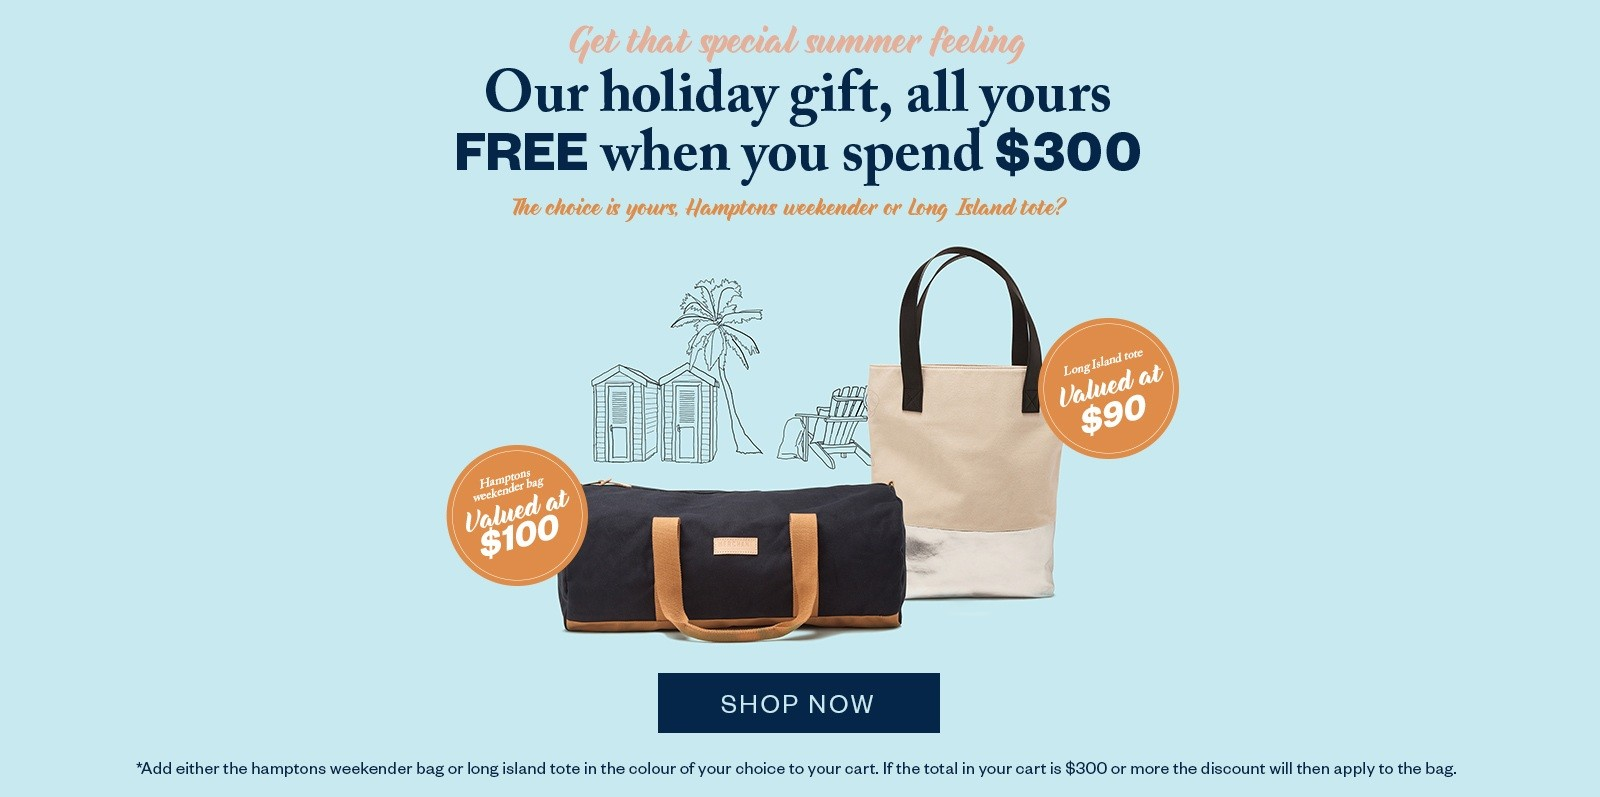 Bargain - Holiday Gift Free - Gift with Purchase - when You Spend $300 @ Merchant1948